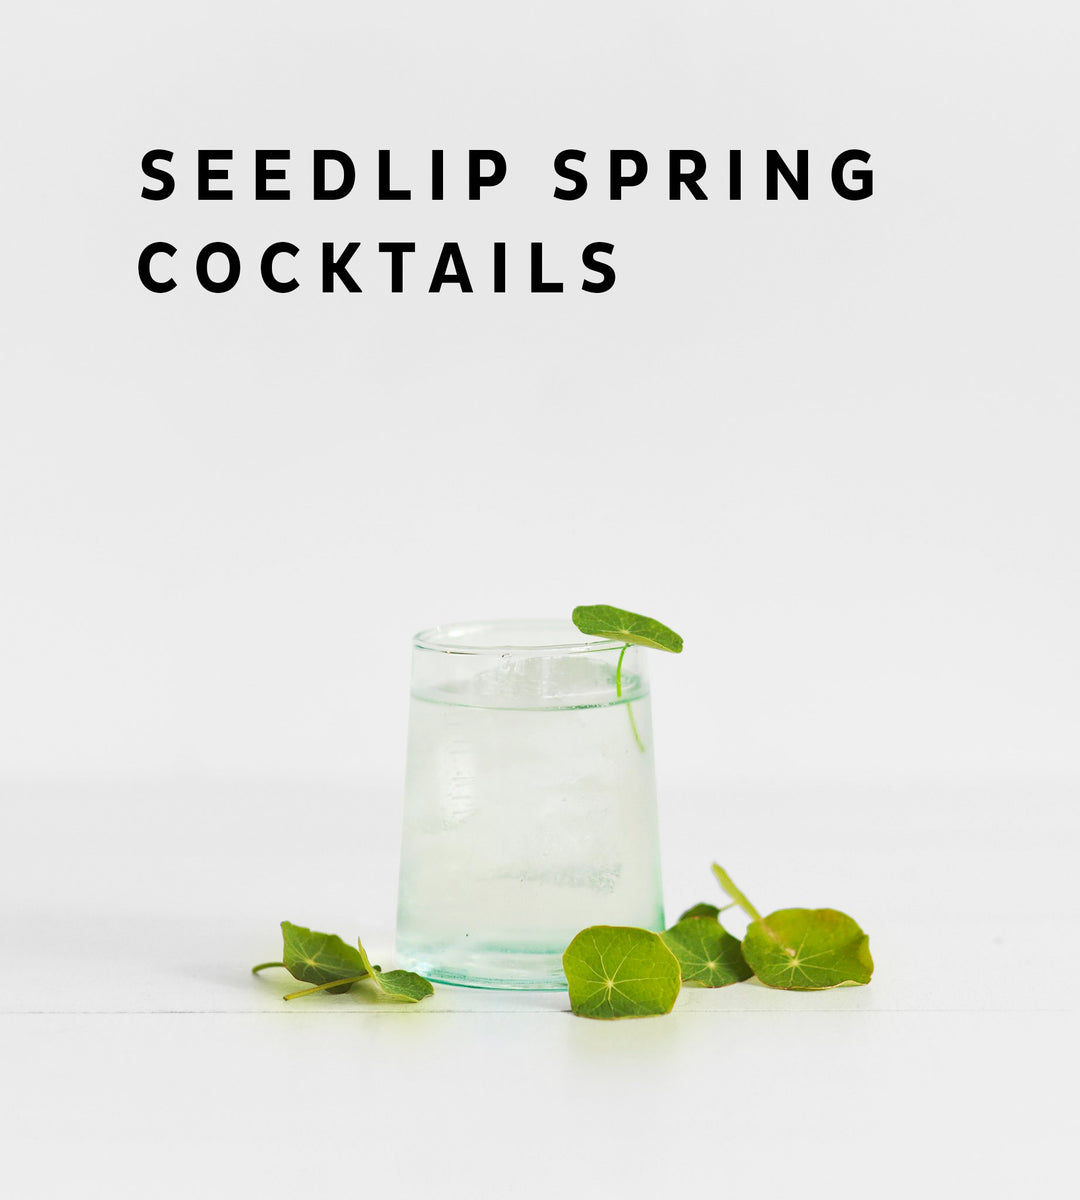 Seedlip Spring Cocktails